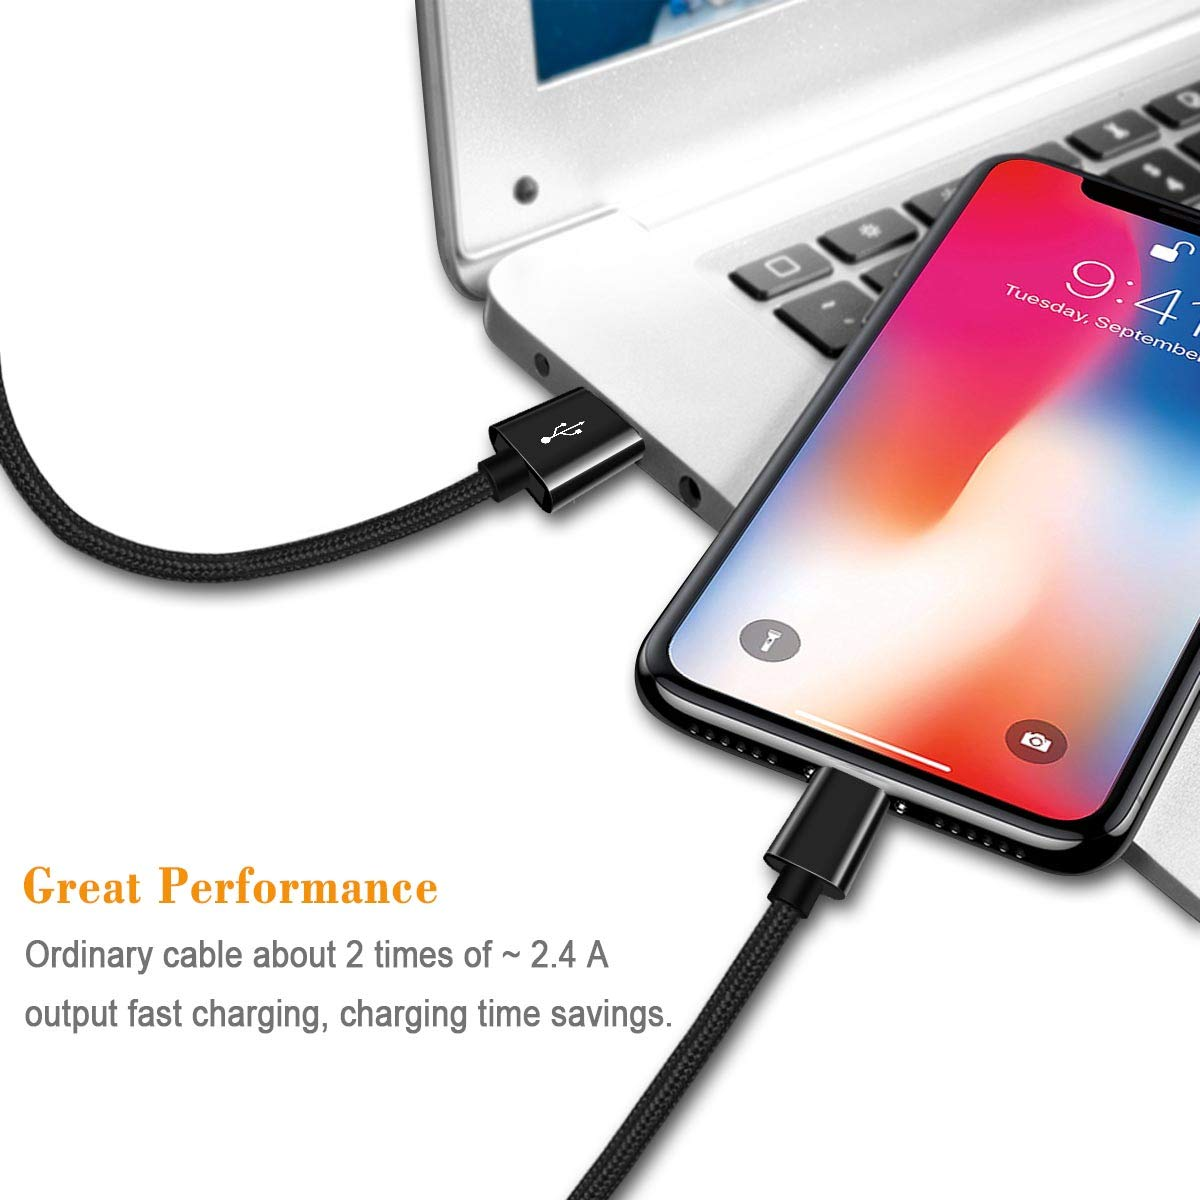 3PACK 6Feet 5FT 5FT Extra Long Nylon Braided USB Charging Cable High Speed Connector Data Sync Transfer Cord Compatible with Phone Xs MAX XR X 8 7 7plus 6S 6 Plus 5S SE pad Phone Charger Cable